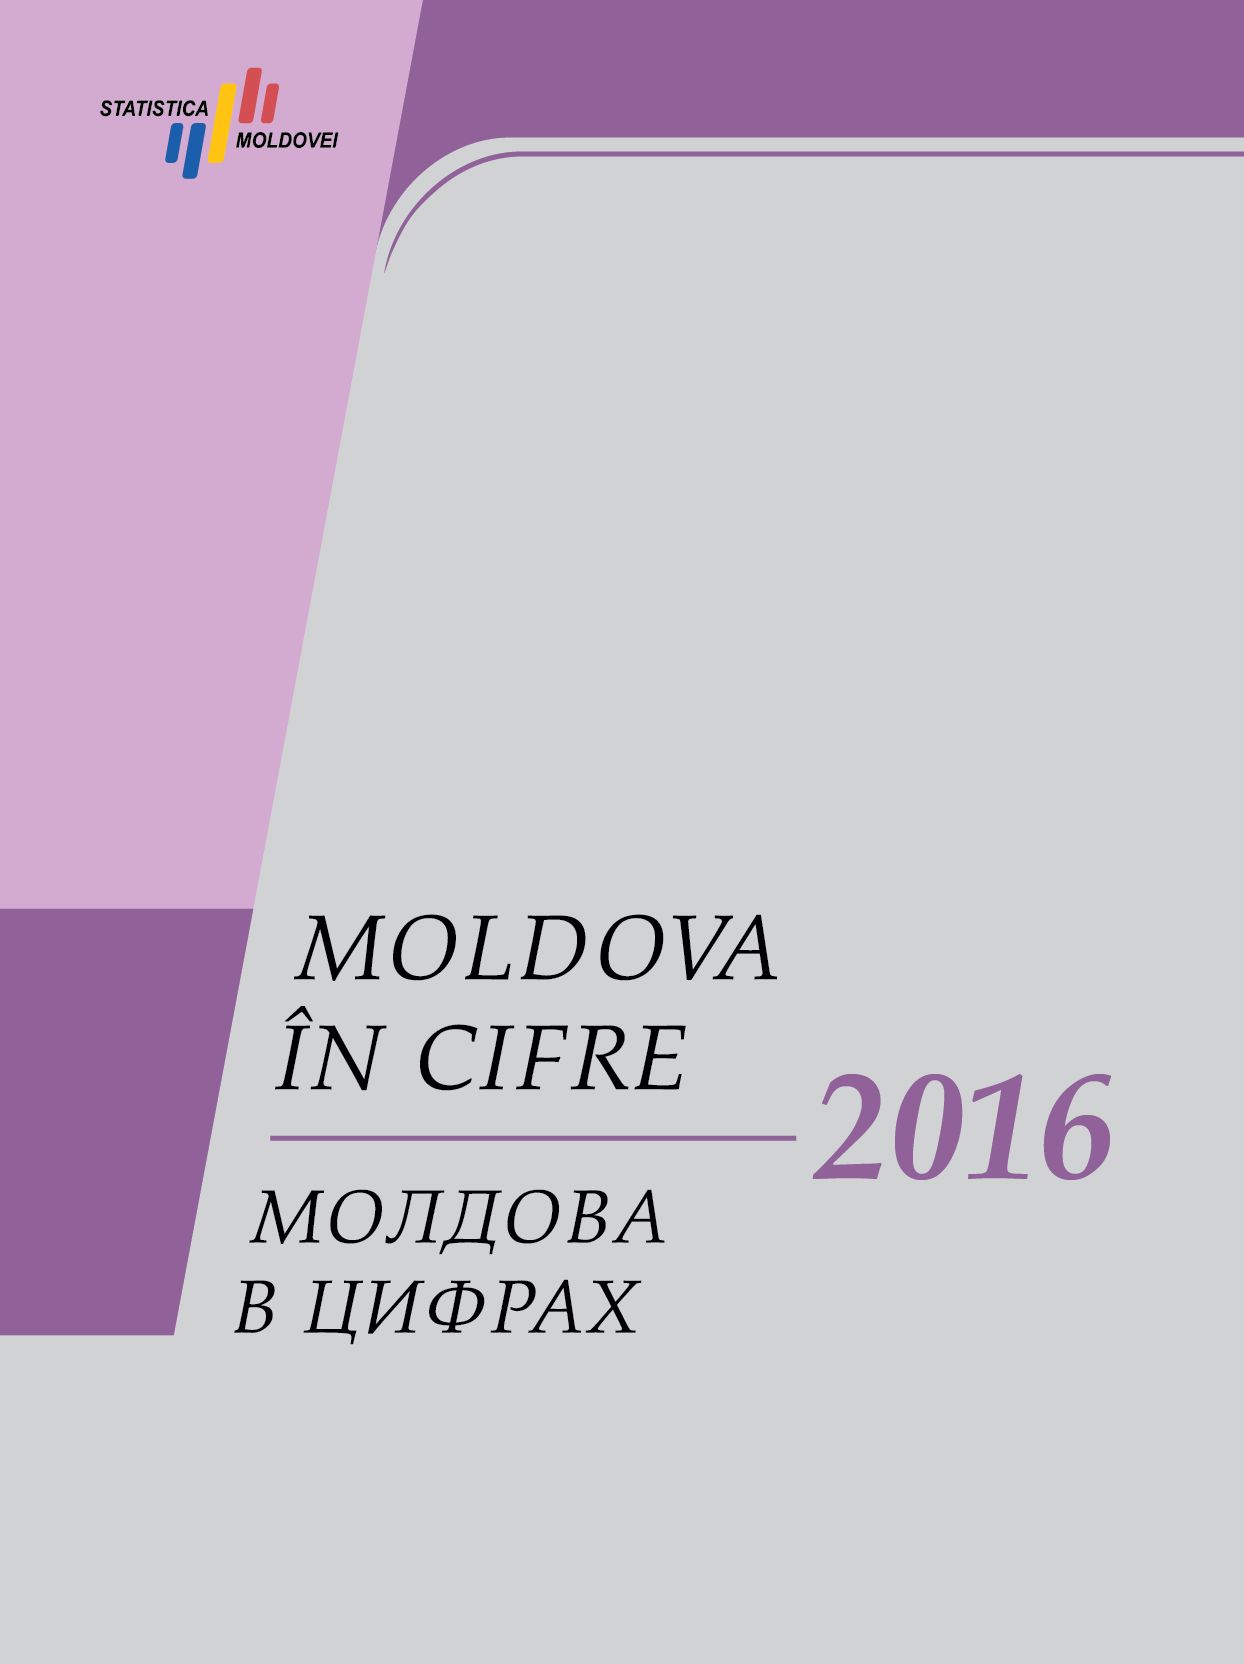 Moldova_cifre_rom_rus_2016.png